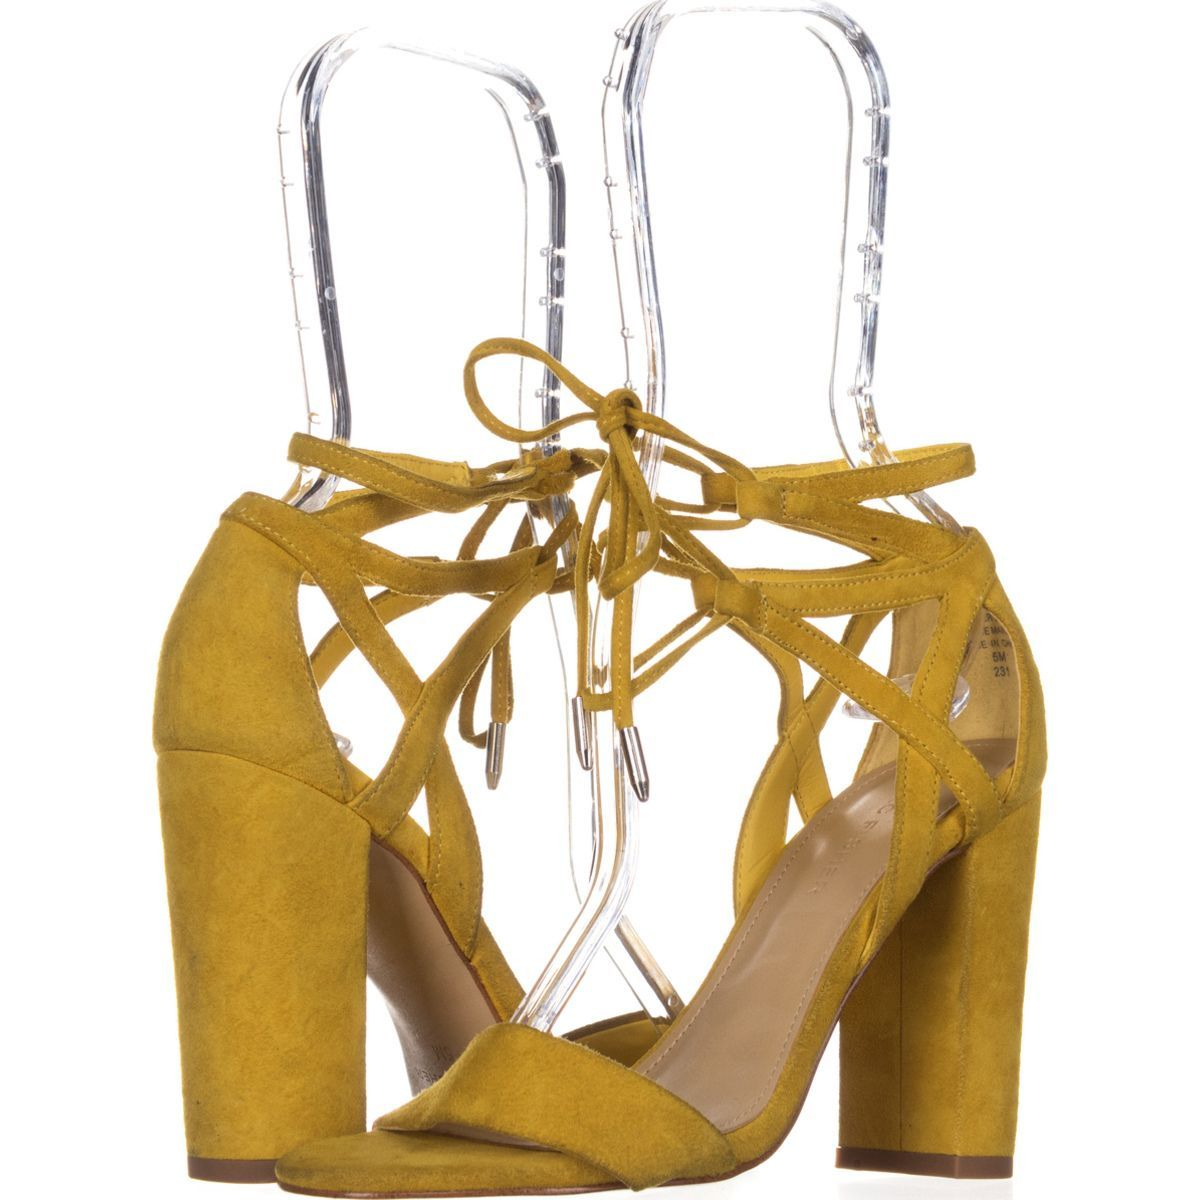 69f0f87d8ed6 Marc Fisher Fatima Lace-Up Block-Heel Sandals 674  sandals  heels  yellow   marcfisher  spring  springoutfits  casualsummeroutfits  summer  shoes   shopping ...